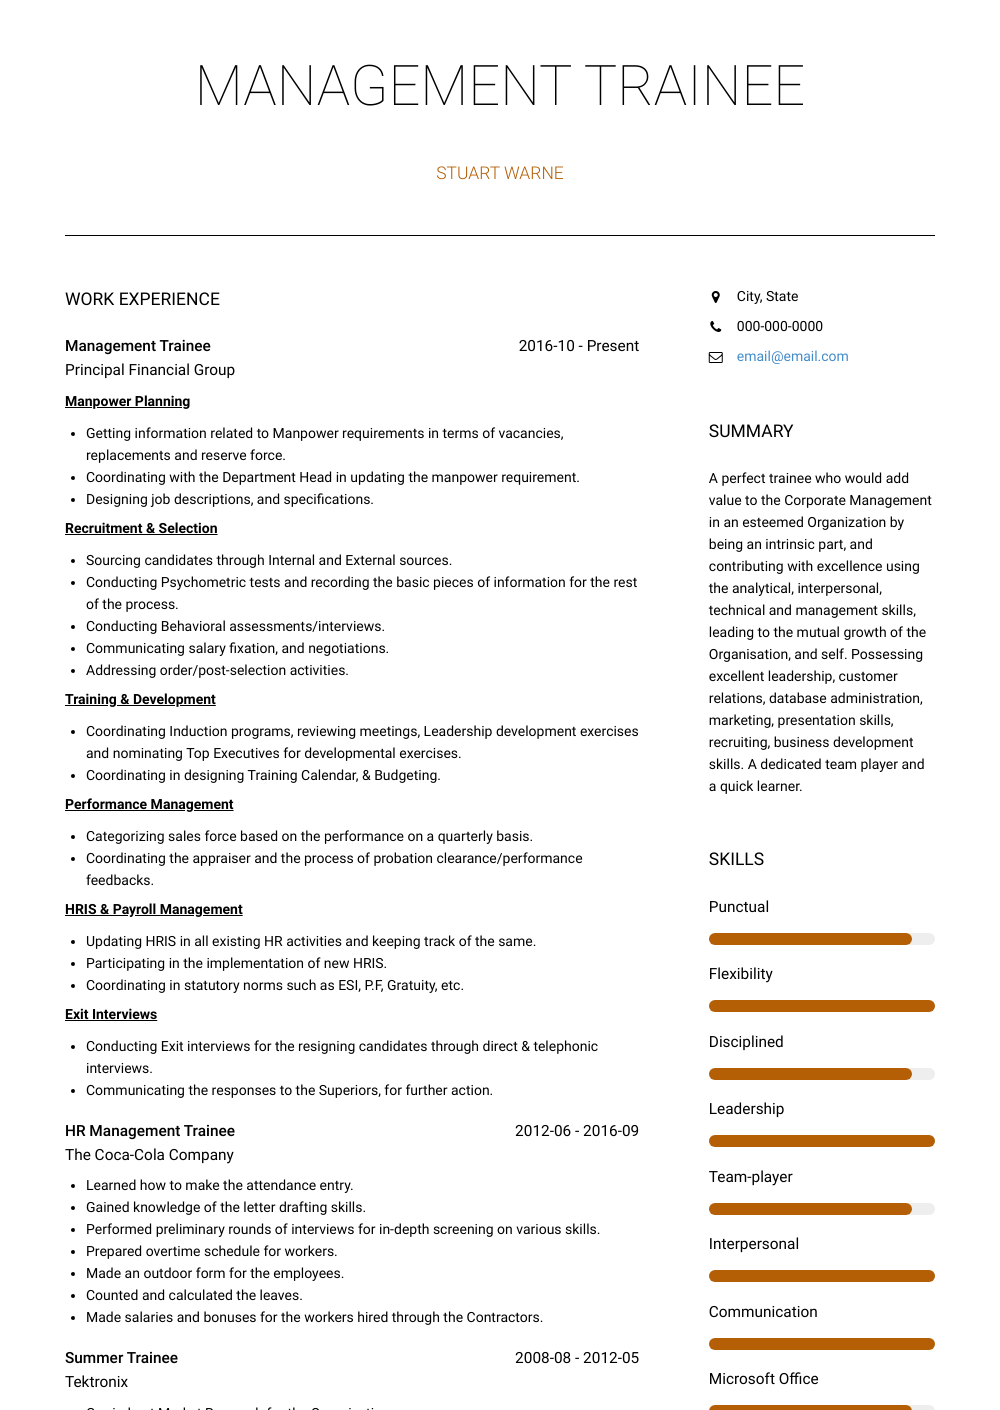 Management Trainee Resume Sample and Template